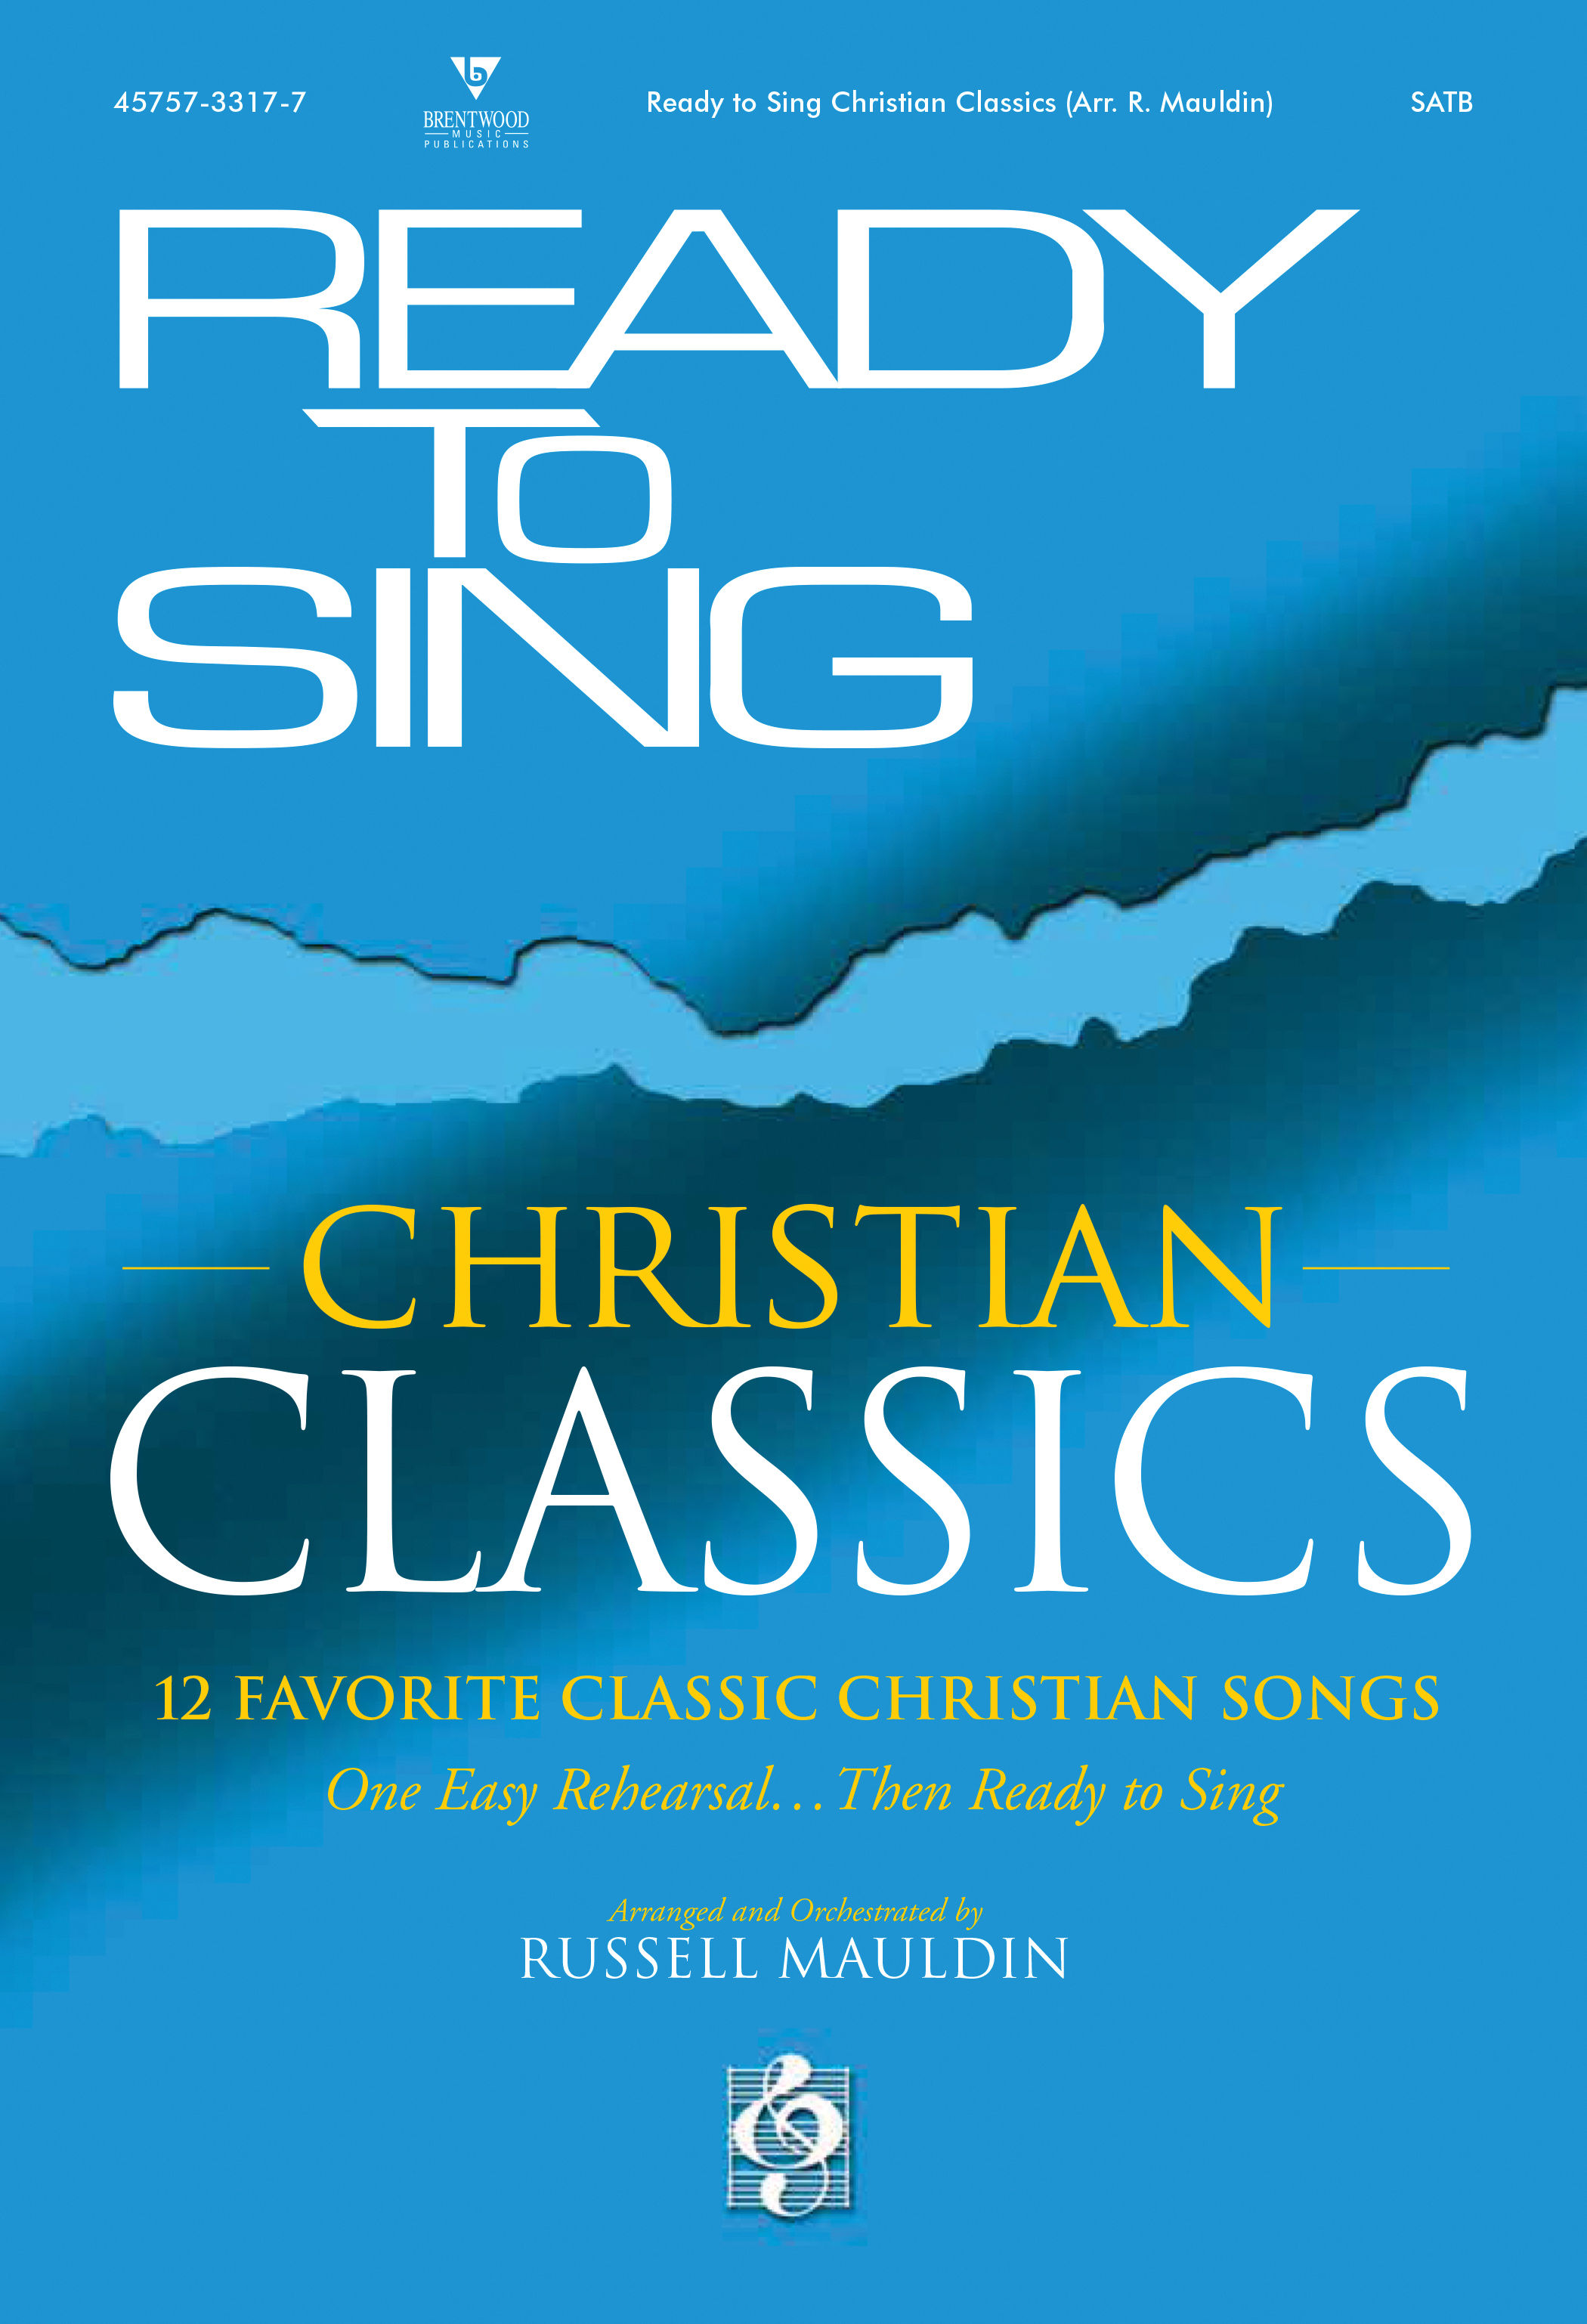 Russell Mauldin : Ready To Sing Christian Classics : CD Preview Pack : 645757331719 : 645757331719